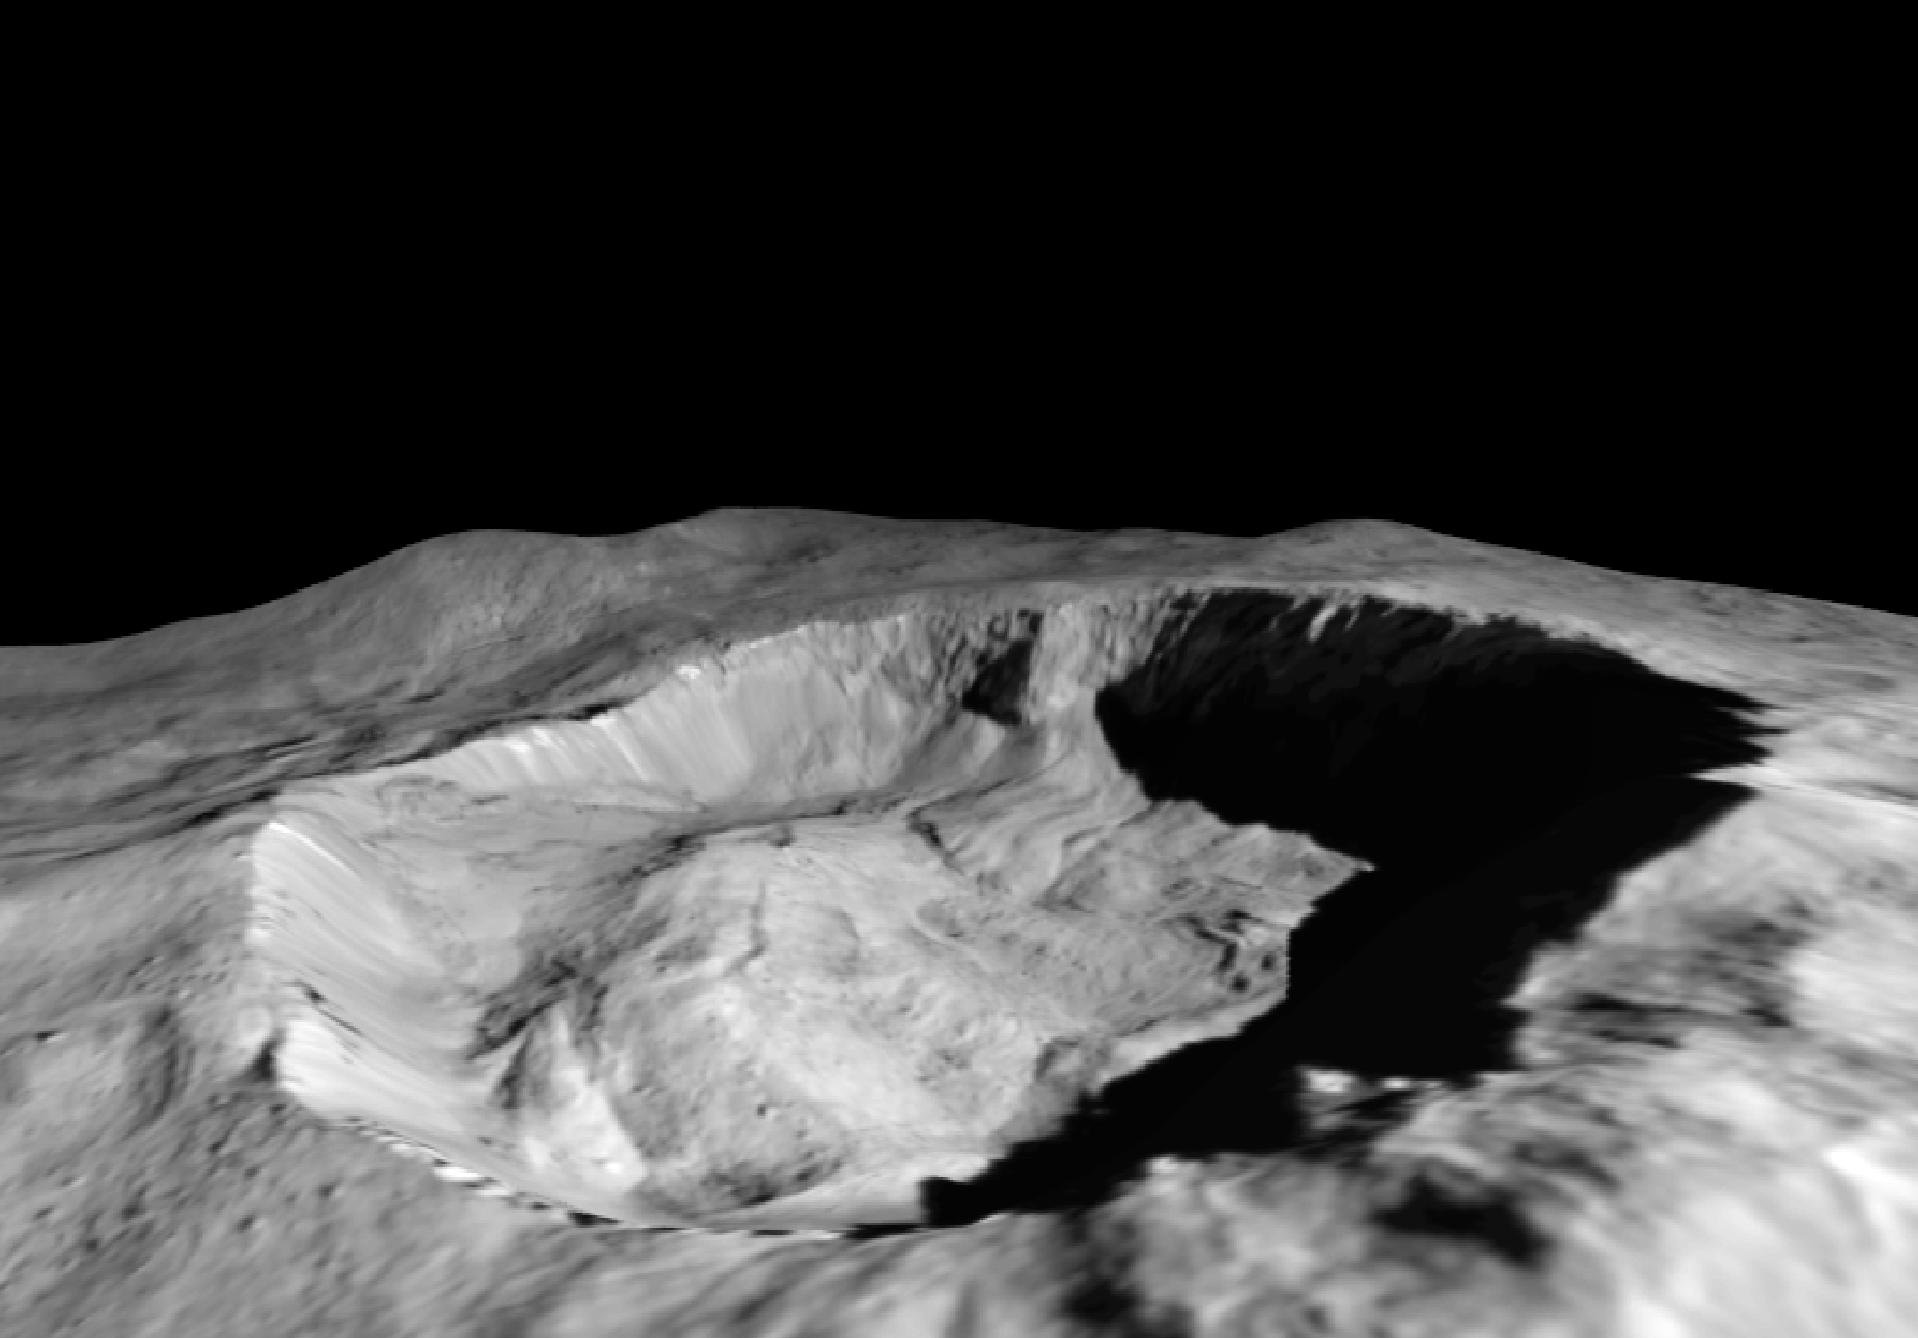 dawn reveals recent changes in ceres surface